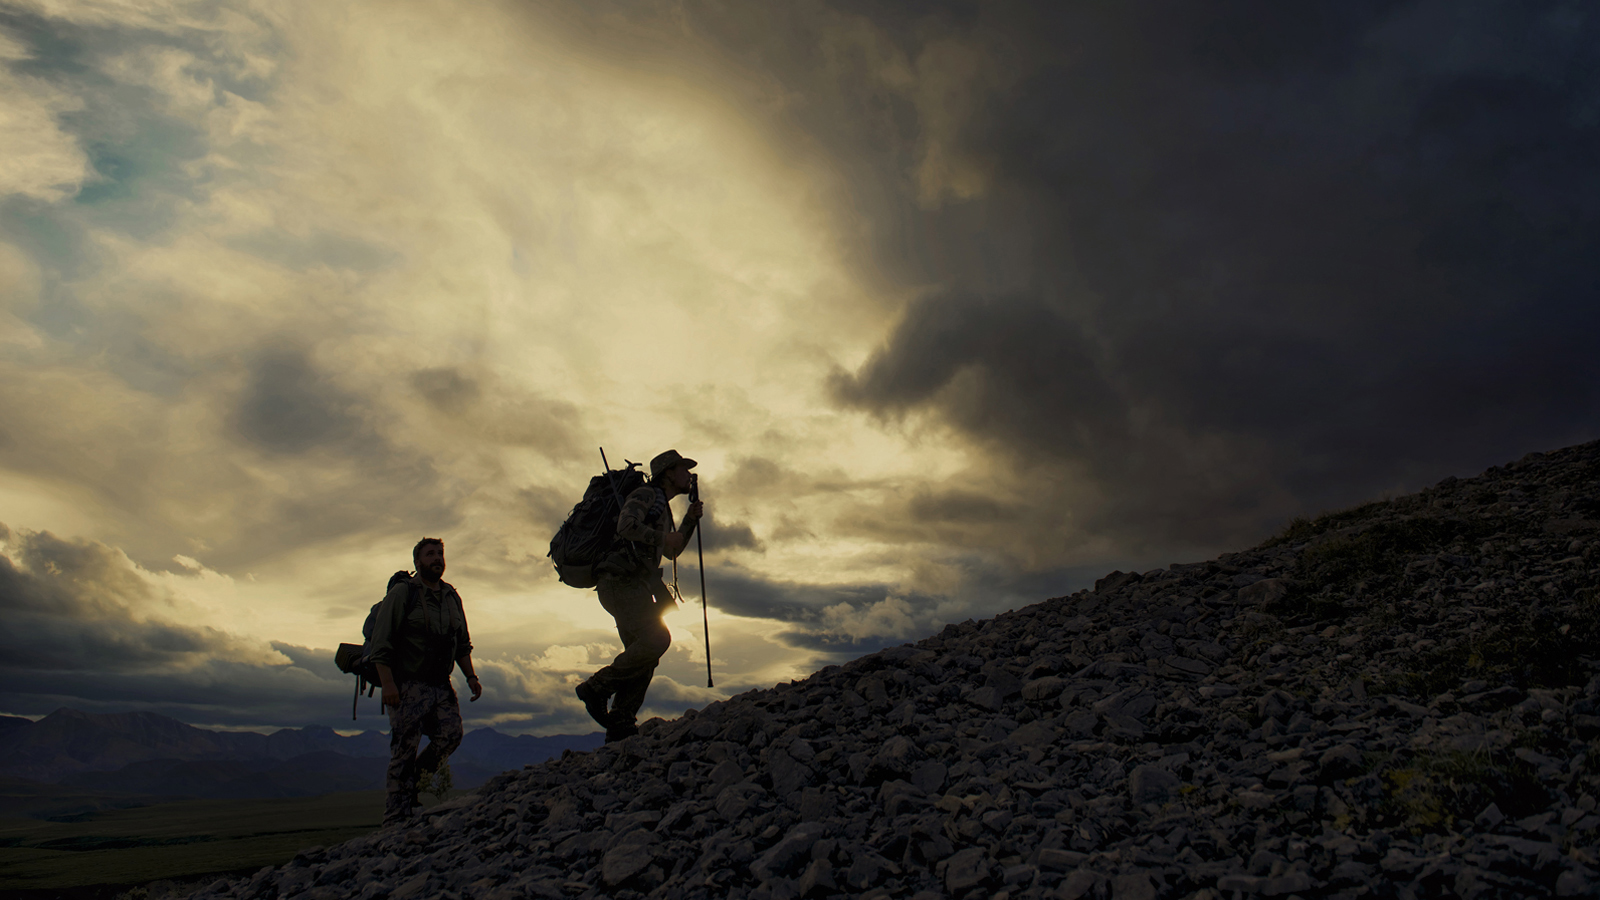 Well past midnight, Dan and Glenn Stevens of Mackenzie Mountain Outfi tters climb the day's last ridge looking for a spot to hunker down for the night.